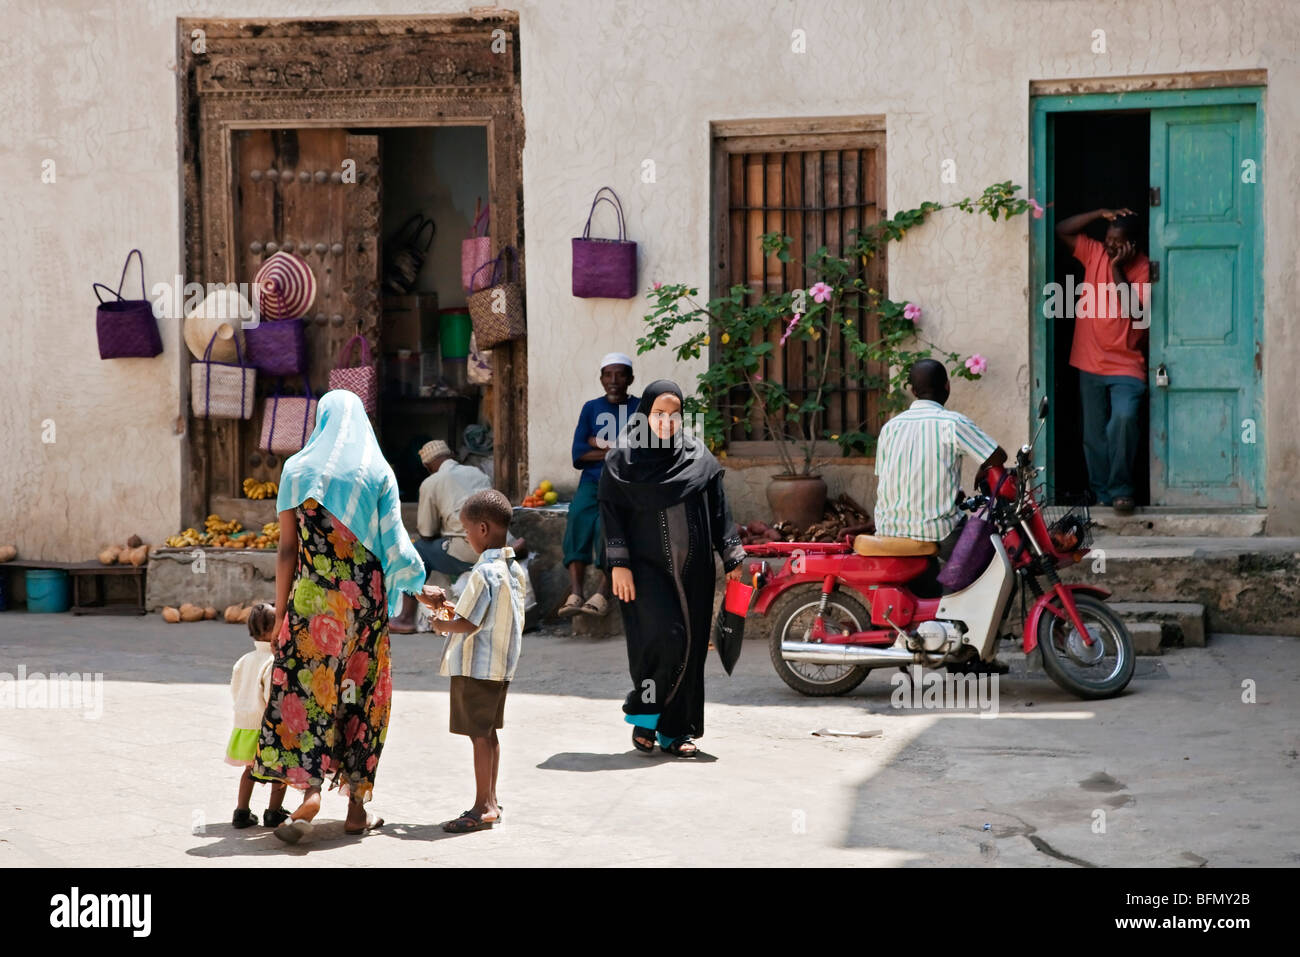 Tanzania, Zanzibar, Stone Town. A typical scene with a small general store in one of Stone Town  s maze of narrow - Stock Image